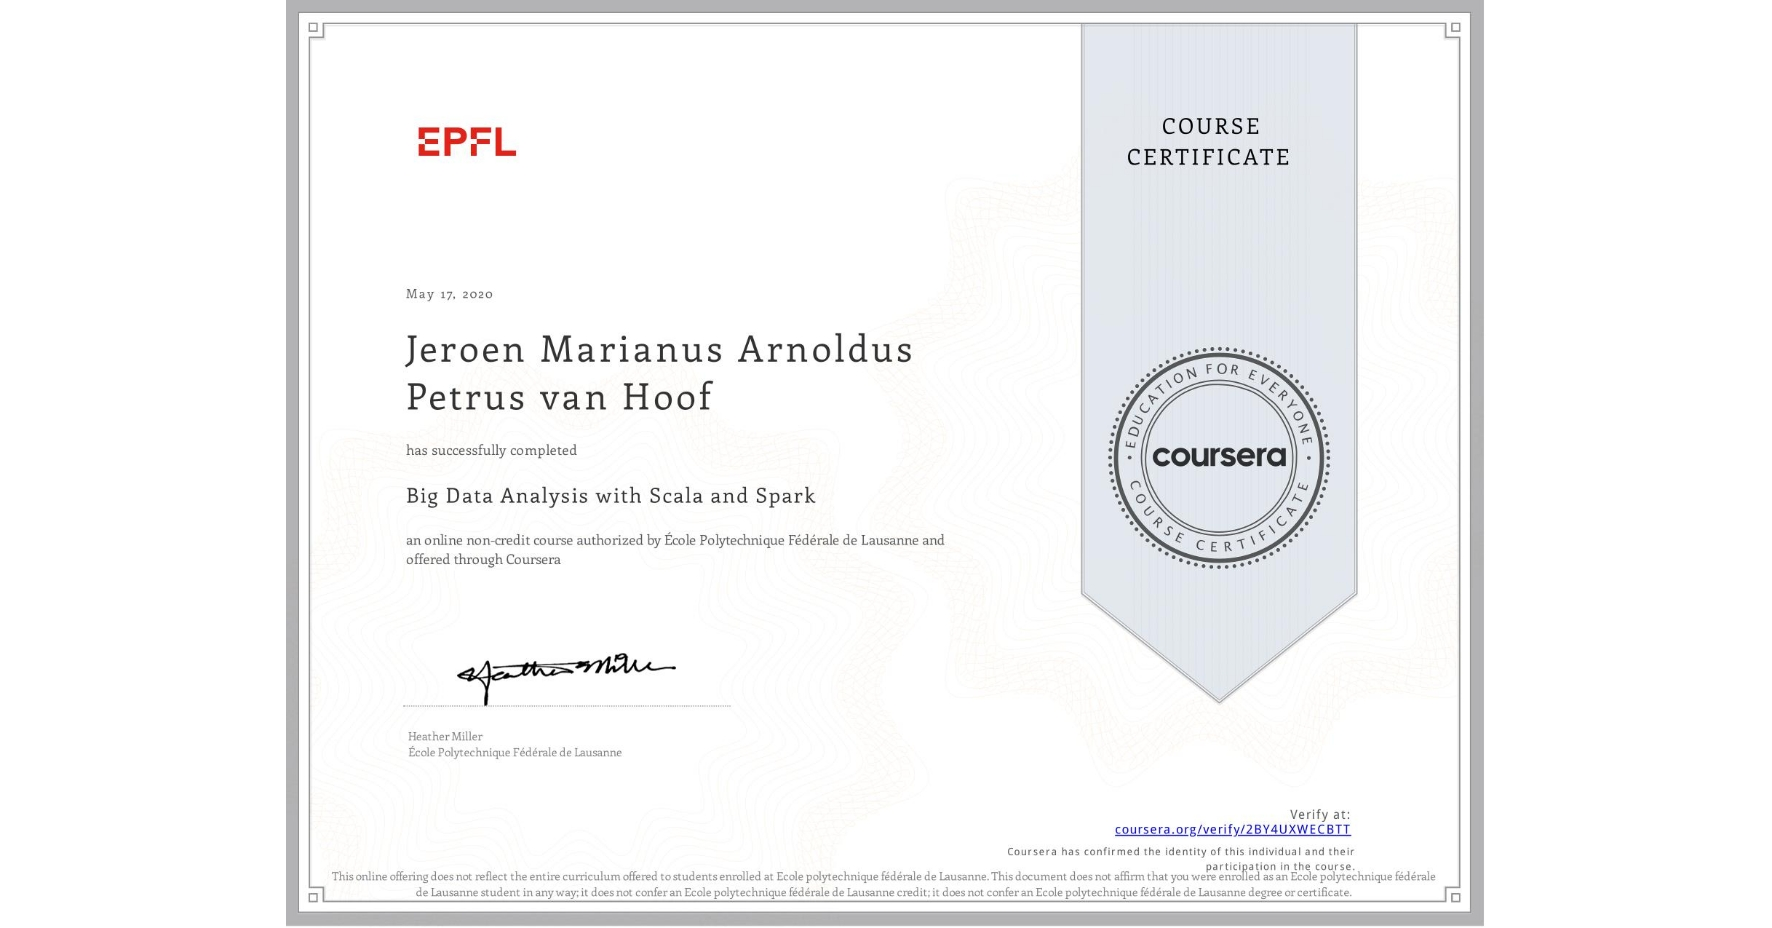 View certificate for Jeroen Marianus Arnoldus Petrus van Hoof, Big Data Analysis with Scala and Spark, an online non-credit course authorized by École Polytechnique Fédérale de Lausanne and offered through Coursera